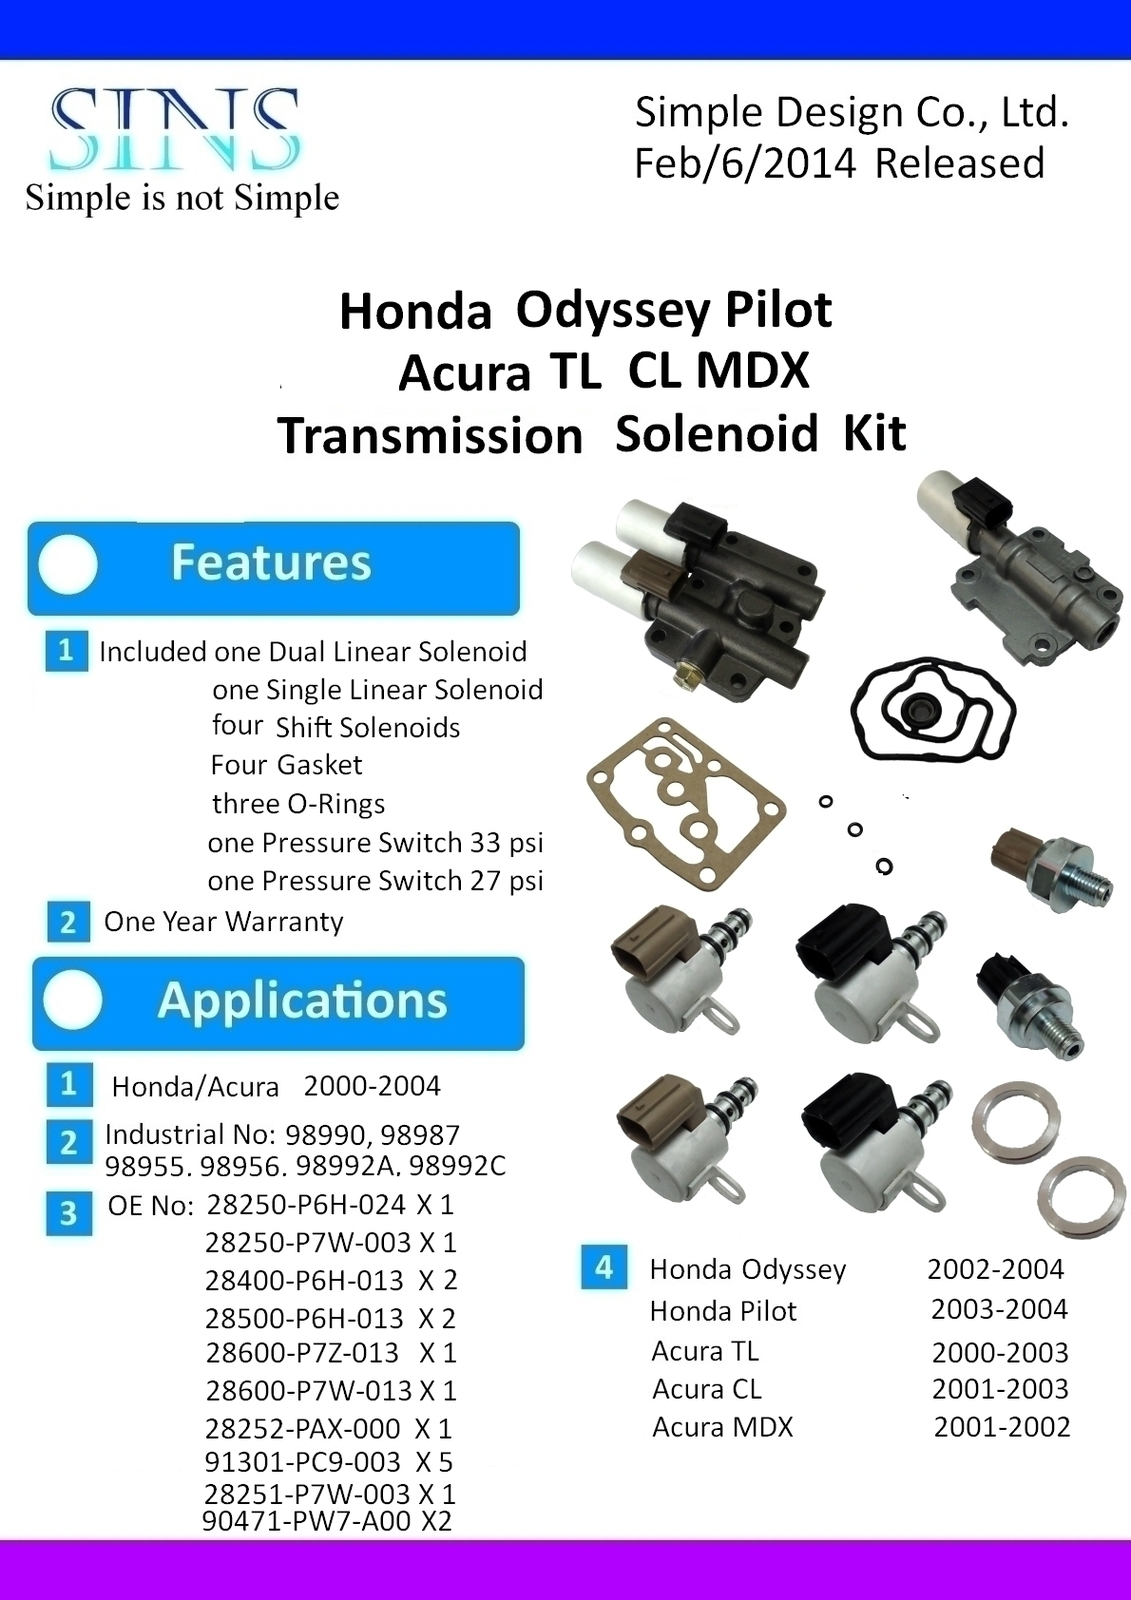 H Honda Odyssey Pilot Acura Trans Kit Ad Eng likewise Maxresdefault as well Hqdefault furthermore B F D Ff furthermore Image T. on honda odyssey transmission pressure switch